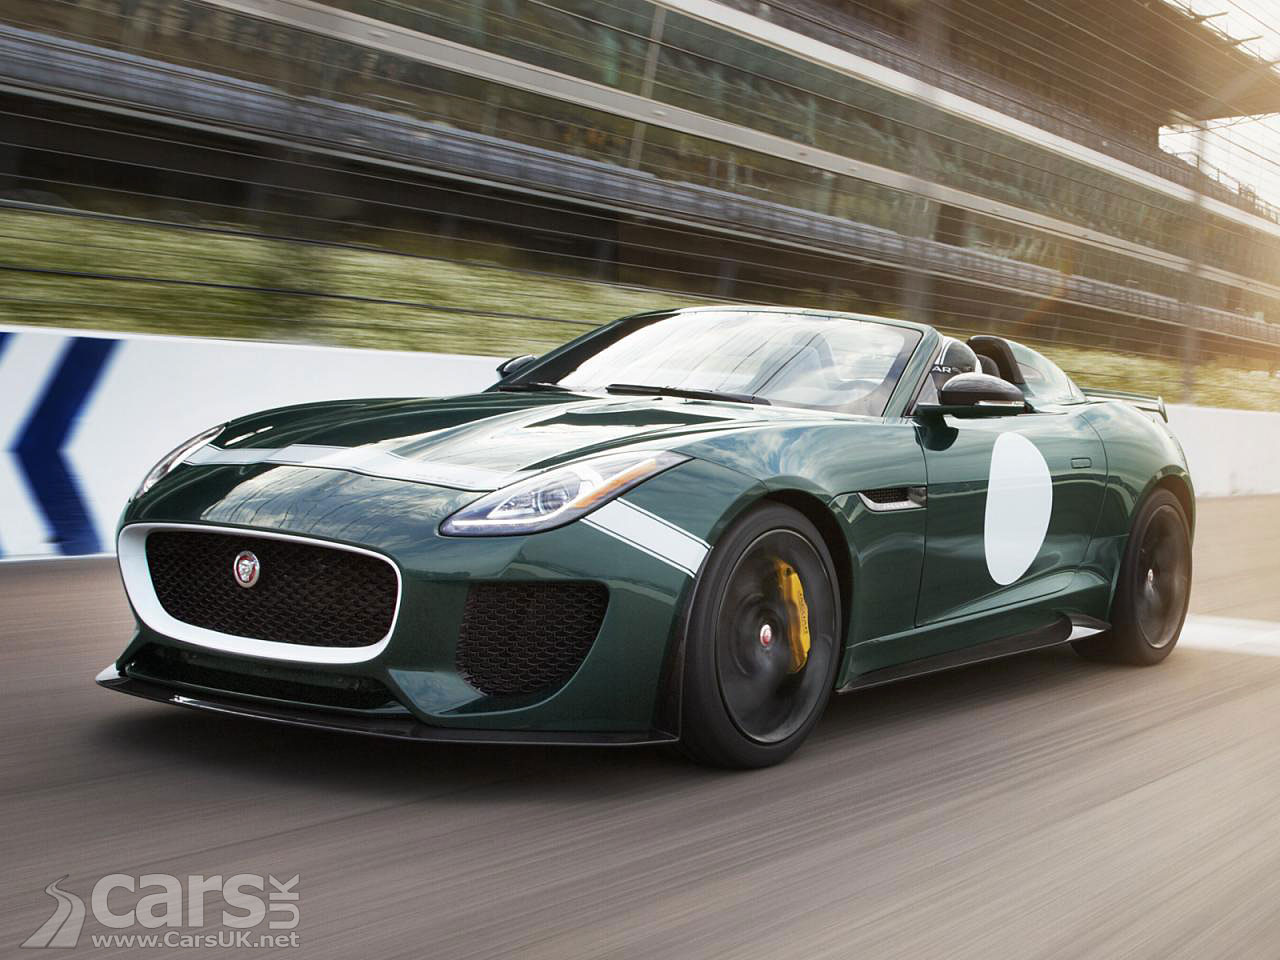 version of the Jaguar Project 7 F-Type, a limited edition F-Type